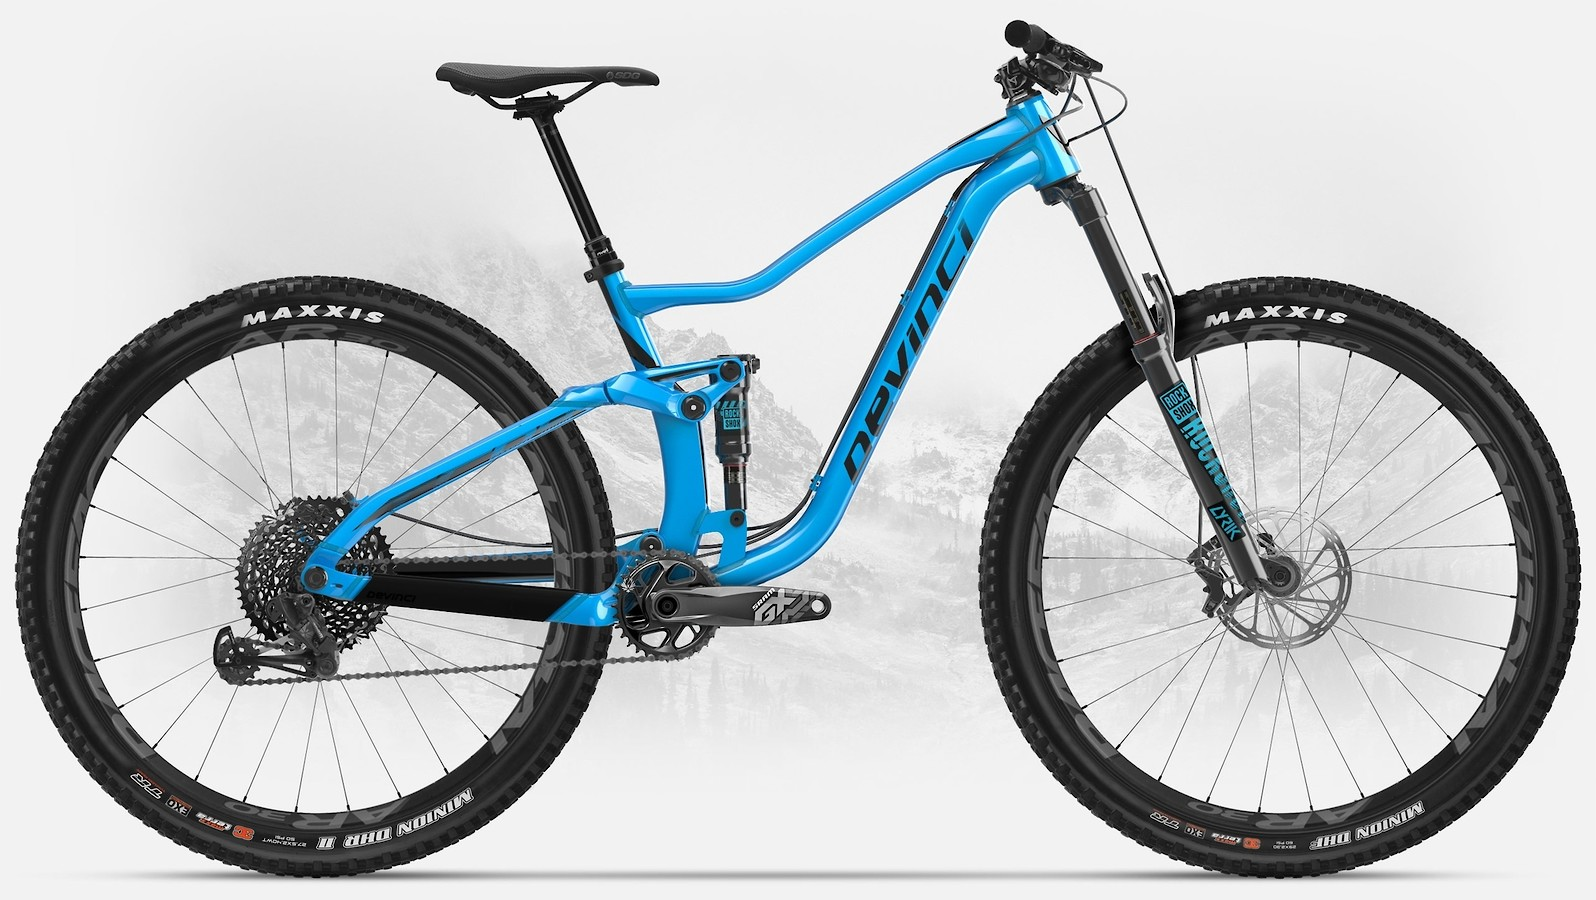 2019 Devinci Troy 29 GX Eagle LTD in gloss blue/black